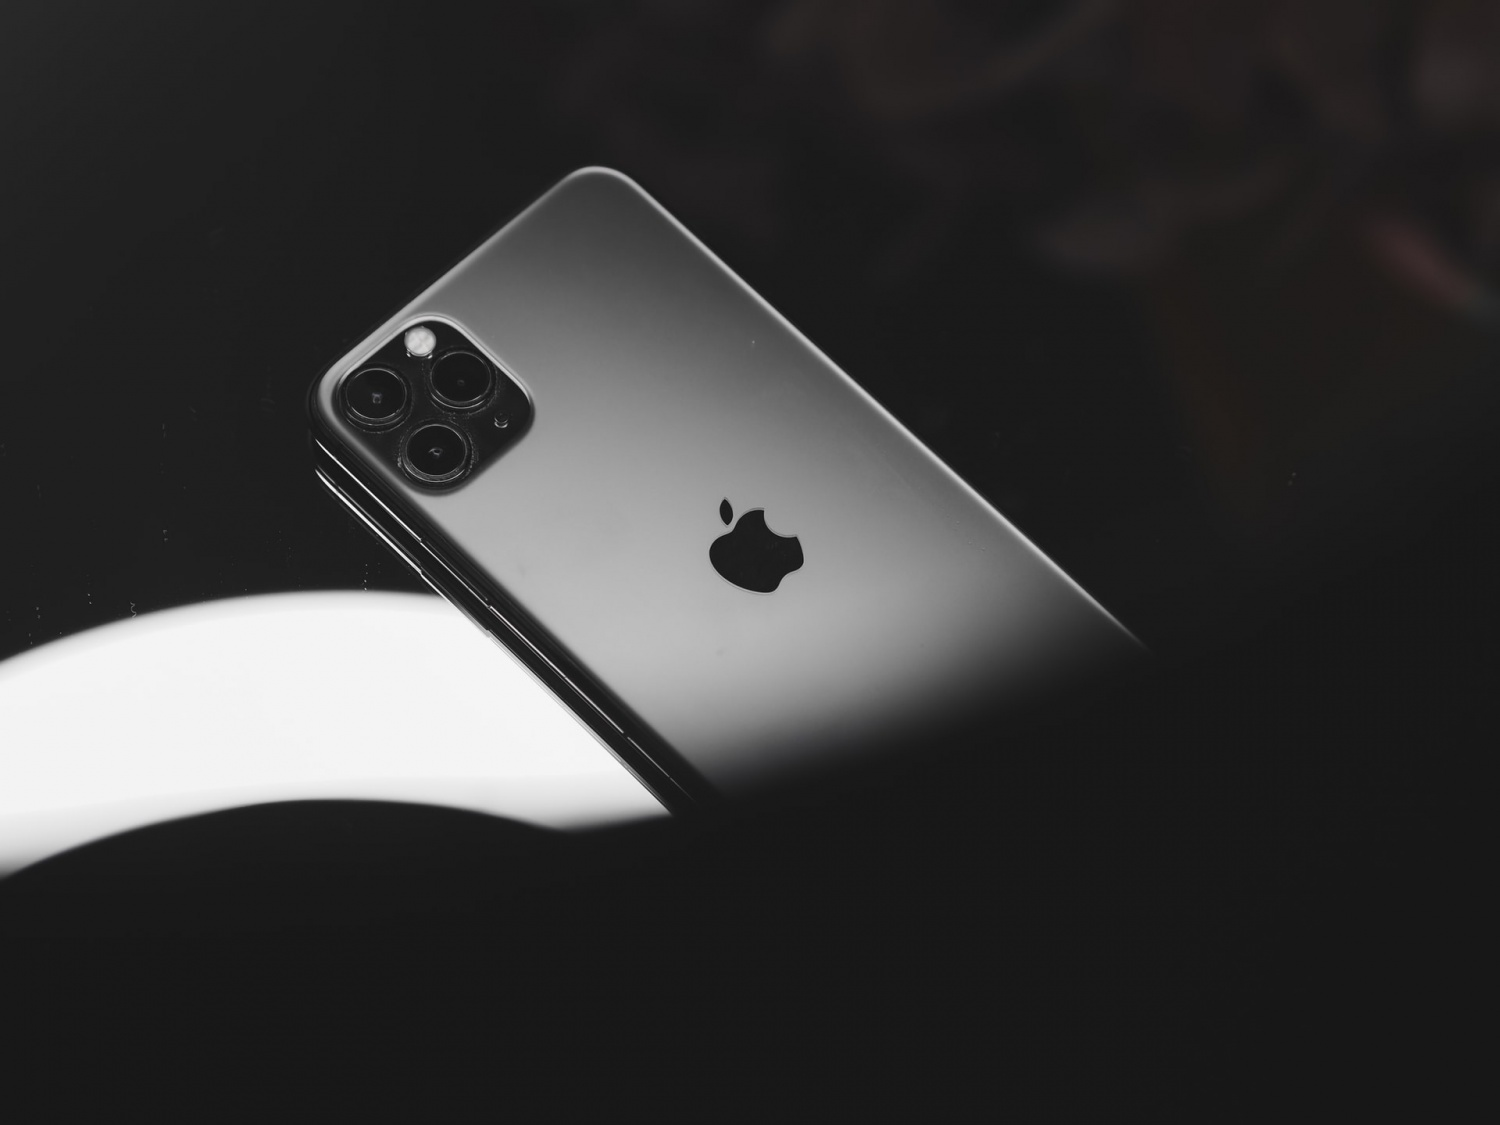 iPhone 13 Leak Teases Worldwide 5G Technology: Release Date, Upgrades, and More Rumored Specs